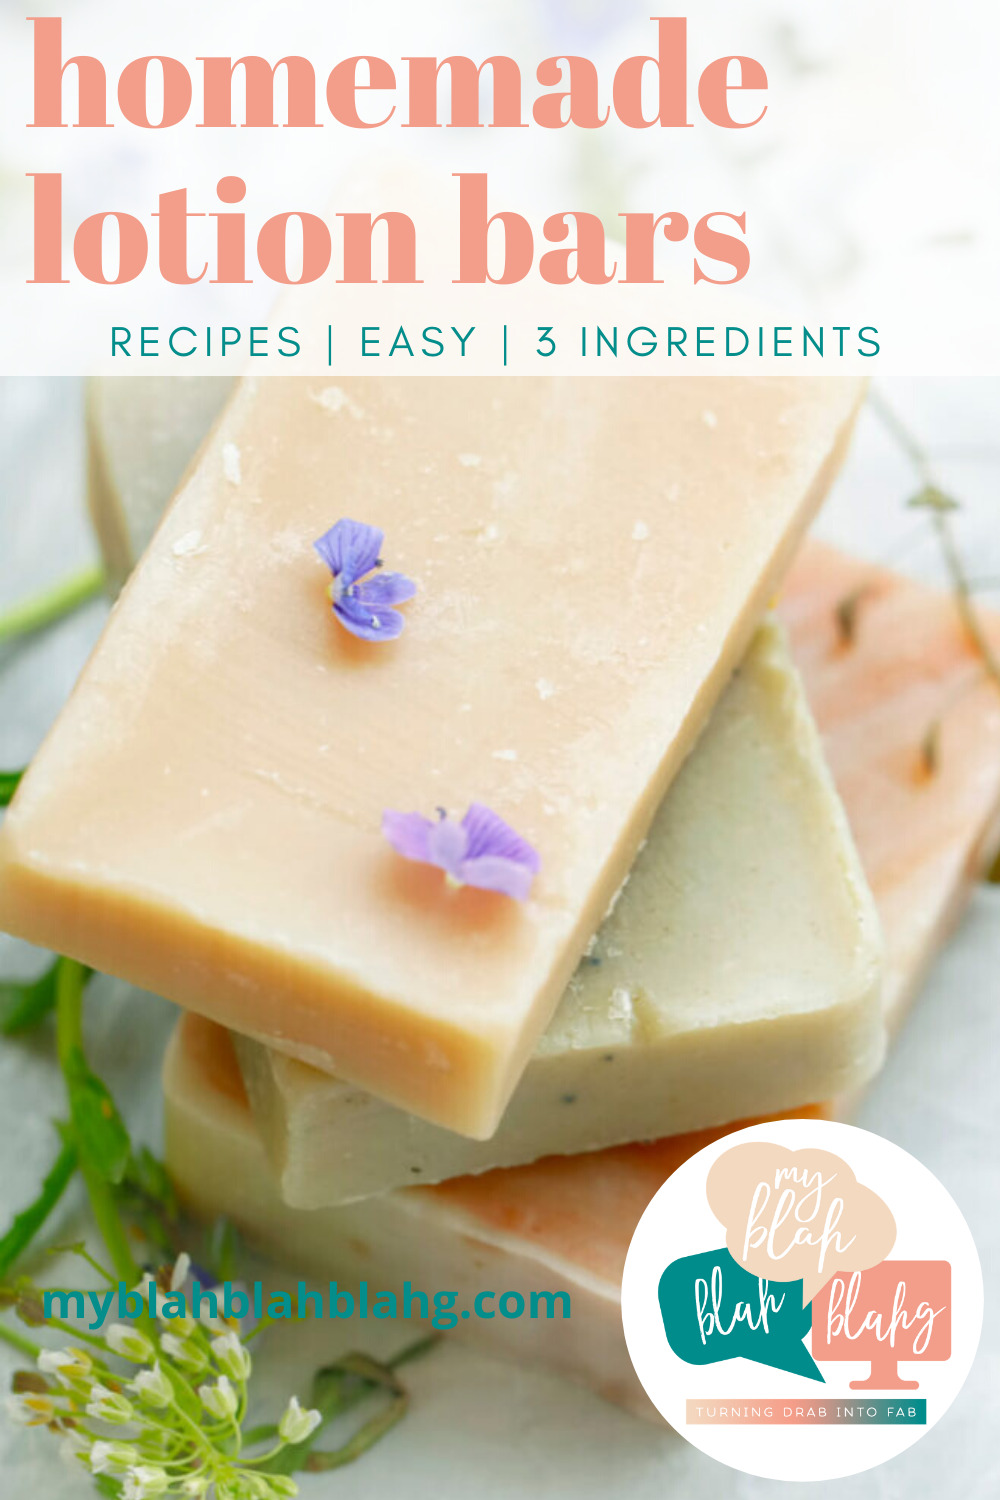 Homemade lotion bars make perfect gifts for friends and family. Not only are they a great DIY, but they are totally customizable! Come check out how to make your own homemade lotion bars. #MyBlahBlahBlahg #HomemadeLotionBars #NaturalLotionBars #NonBeeswaxLotionBars #3IngredientLotionBars